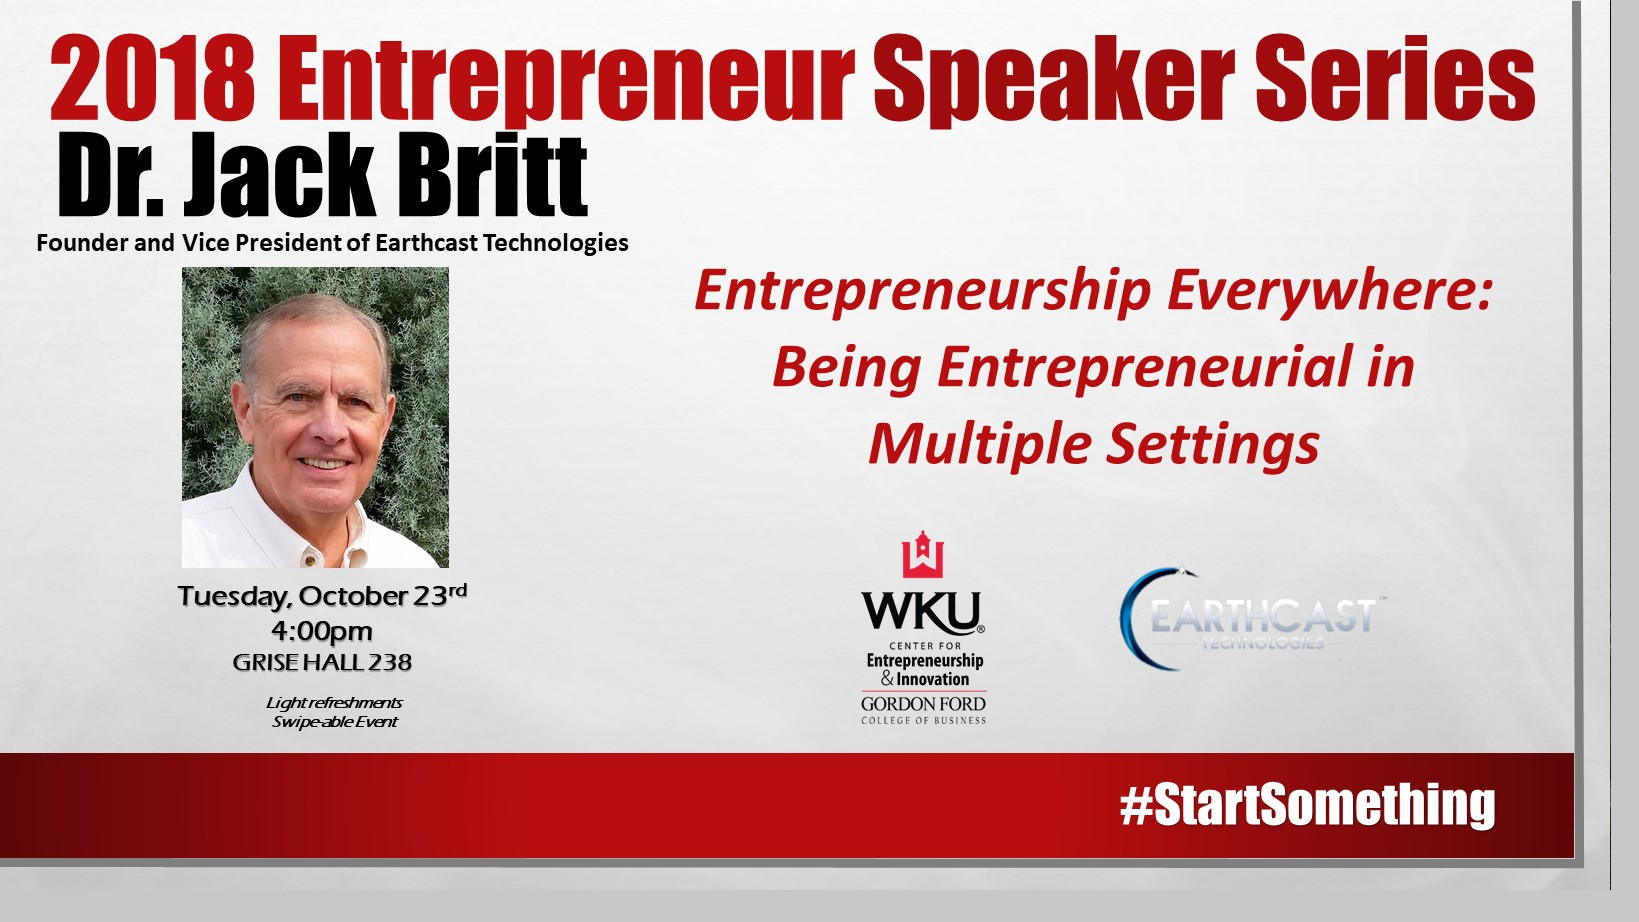 Entrepreneurship Speaker Series - Dr. Jack Britt; Entrepreneurship Everwhere: Being Entrepreneurial in Multiple Settings